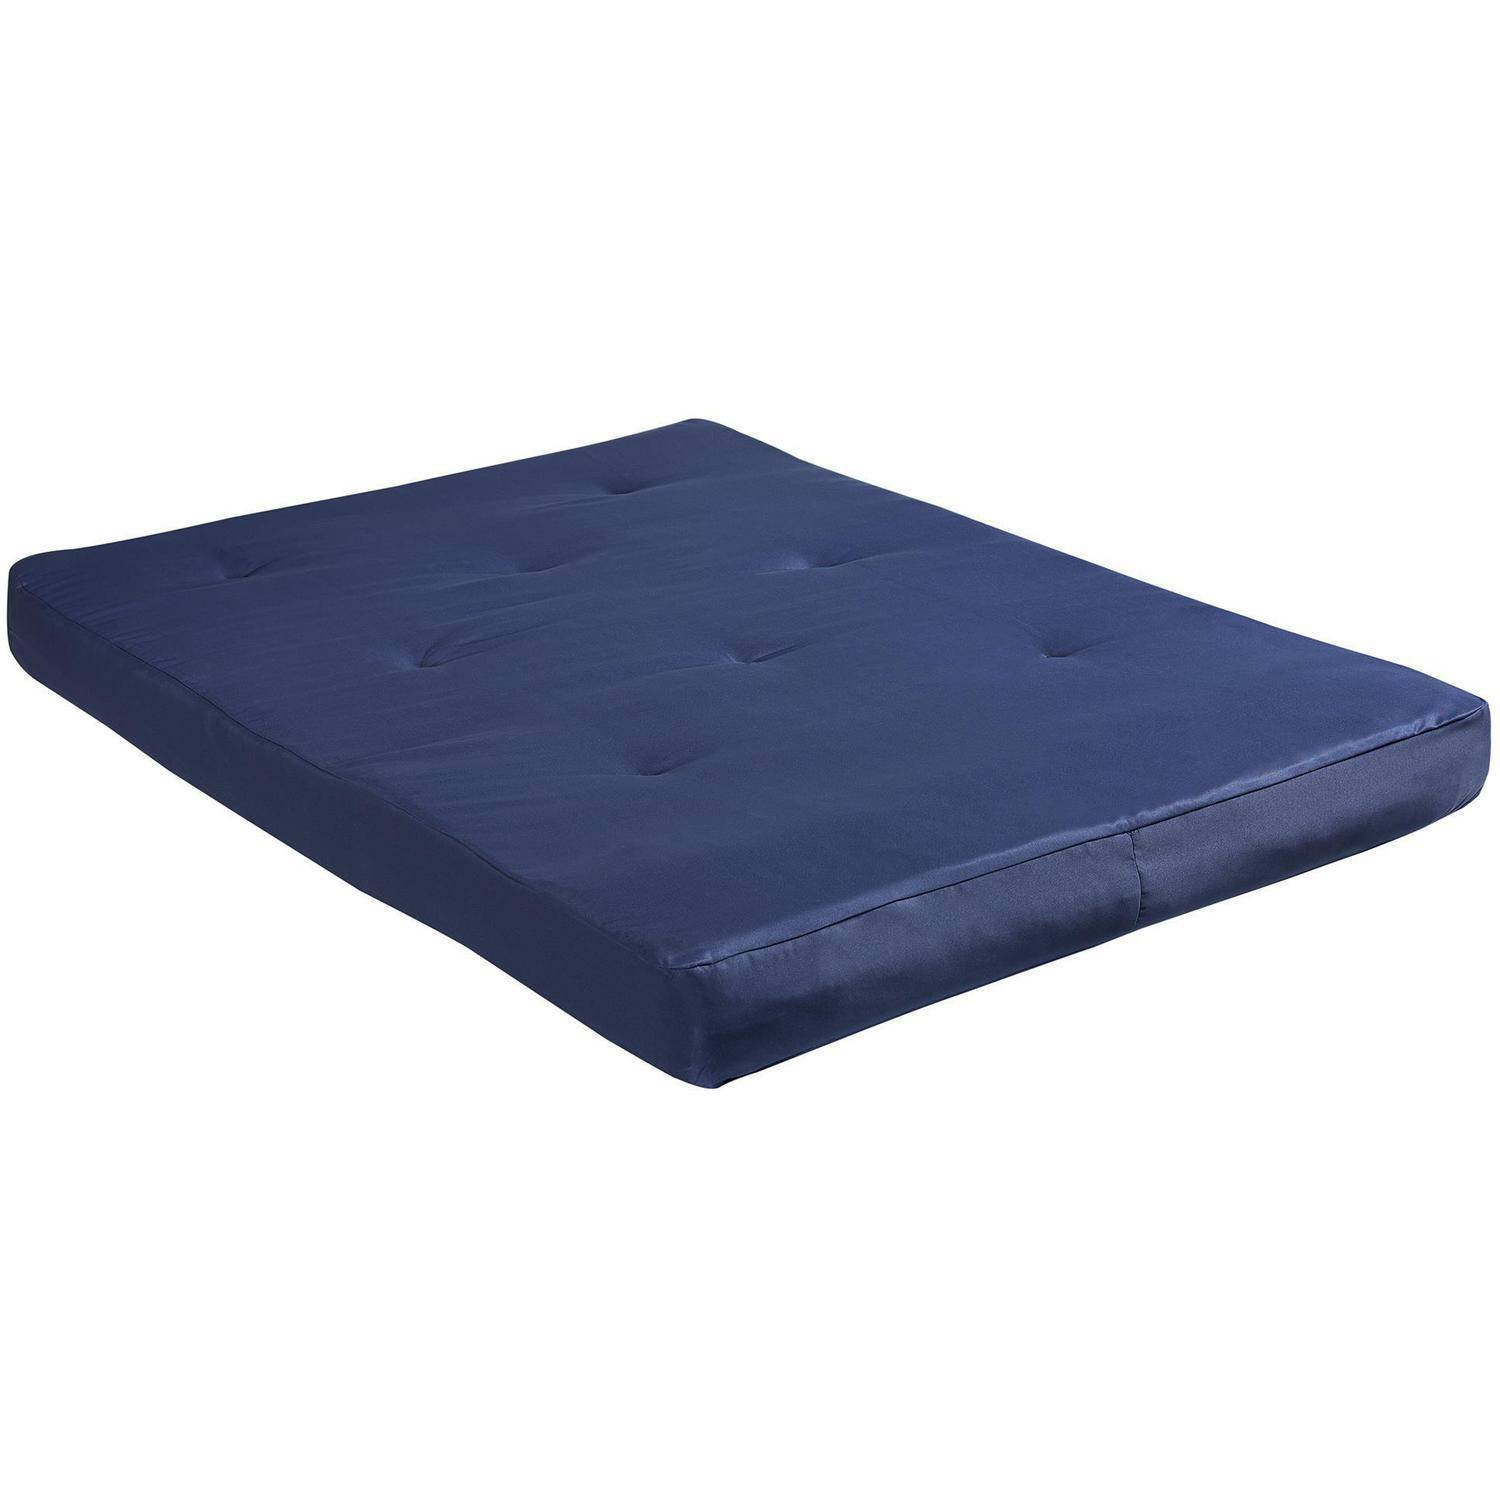 dhp 8   futon mattress full size navy blue dhp 8   futon mattress full size navy blue   walmart    rh   walmart